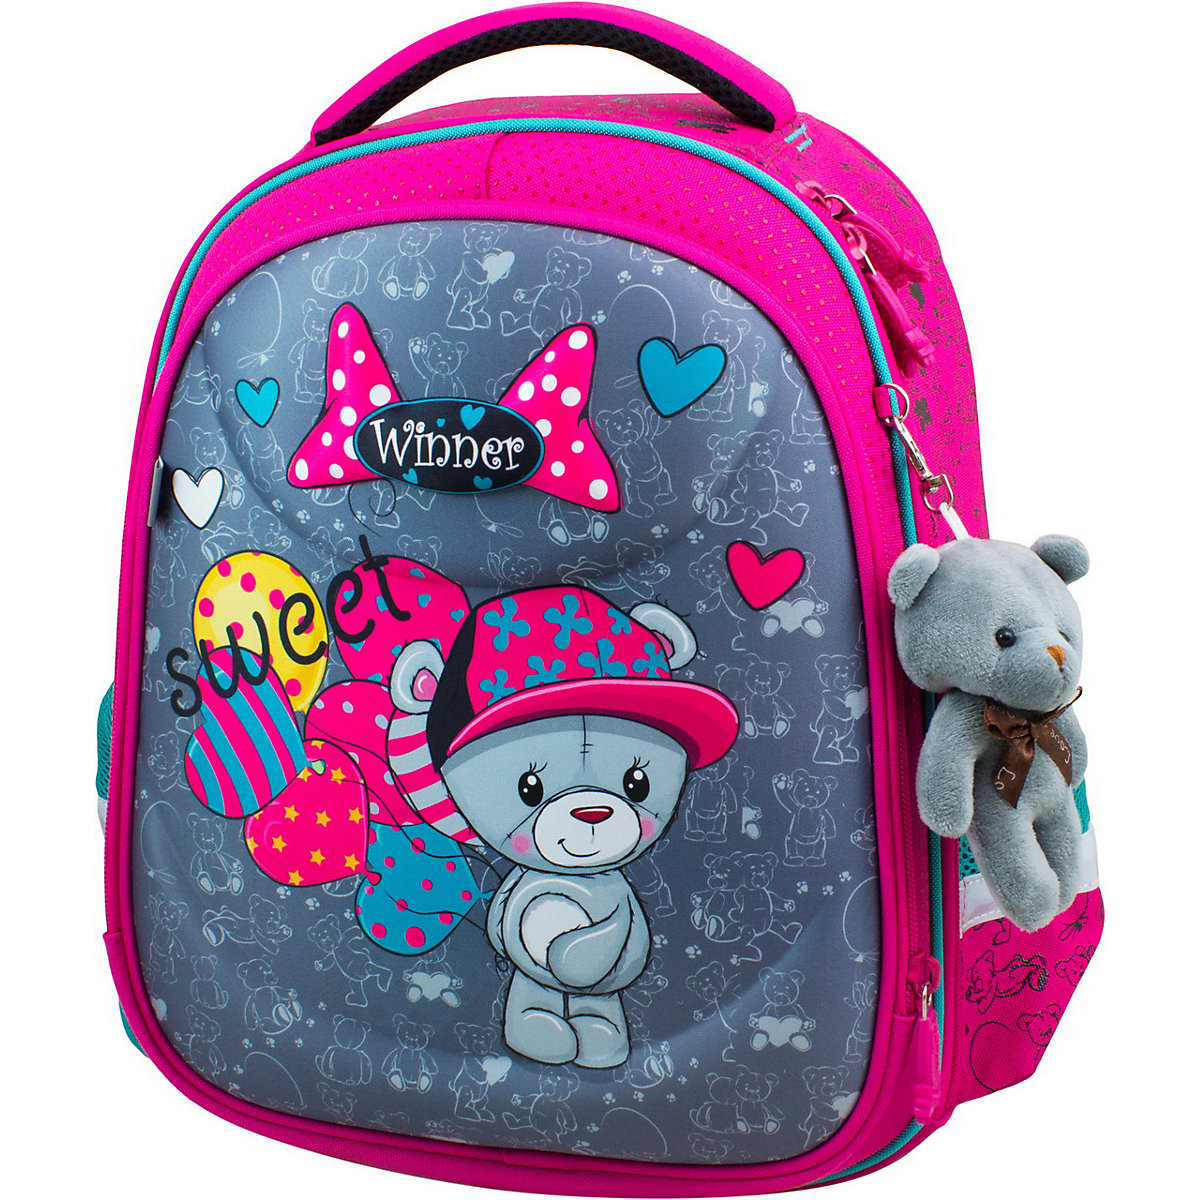 School Bags WINNER 11393744 Schoolbag Backpack For Boy And Girl Toy Key Chain Animals Reflective Element MTpromo